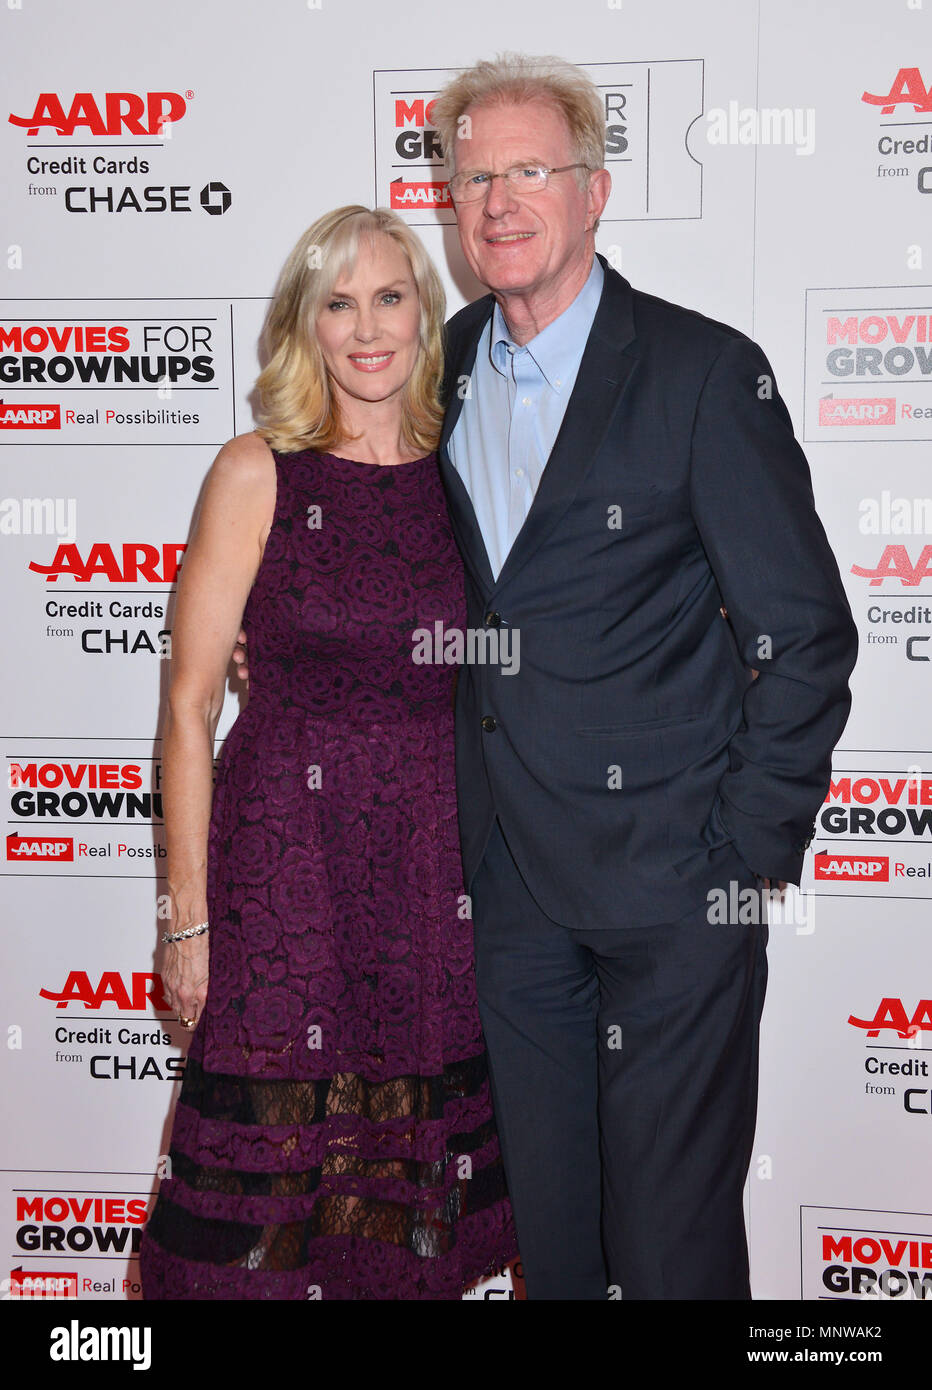 Ed Begley and Rachelle Carson-Begley, at the Movies For Grow Ups - AARP - at the Beverly Wilshire Hotel in Los Angeles. February 8, 2016.Ed Begley and Rachelle Carson-Begley, ------------- Red Carpet Event, Vertical, USA, Film Industry, Celebrities,  Photography, Bestof, Arts Culture and Entertainment, Topix Celebrities fashion /  Vertical, Best of, Event in Hollywood Life - California,  Red Carpet and backstage, USA, Film Industry, Celebrities,  movie celebrities, TV celebrities, Music celebrities, Photography, Bestof, Arts Culture and Entertainment,  Topix, vertical,  family from from the ye - Stock Image